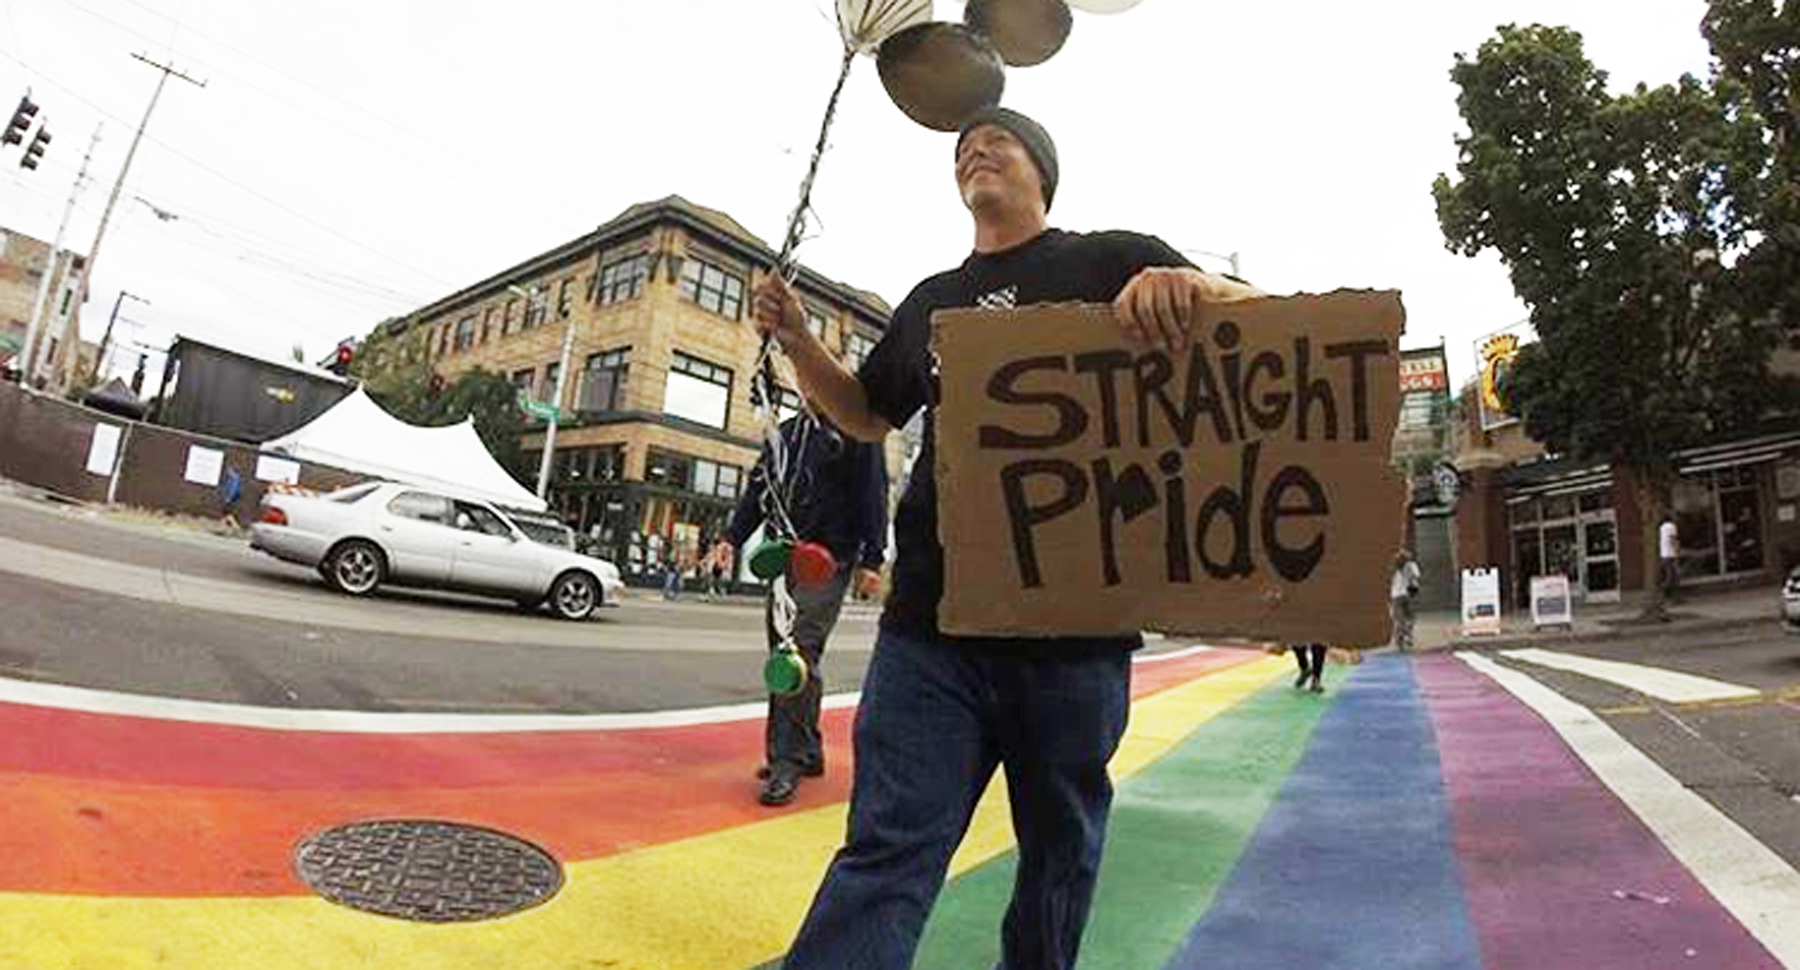 Guy Hosts Straight Pride Parade And Blames Gays When No One Shows Up